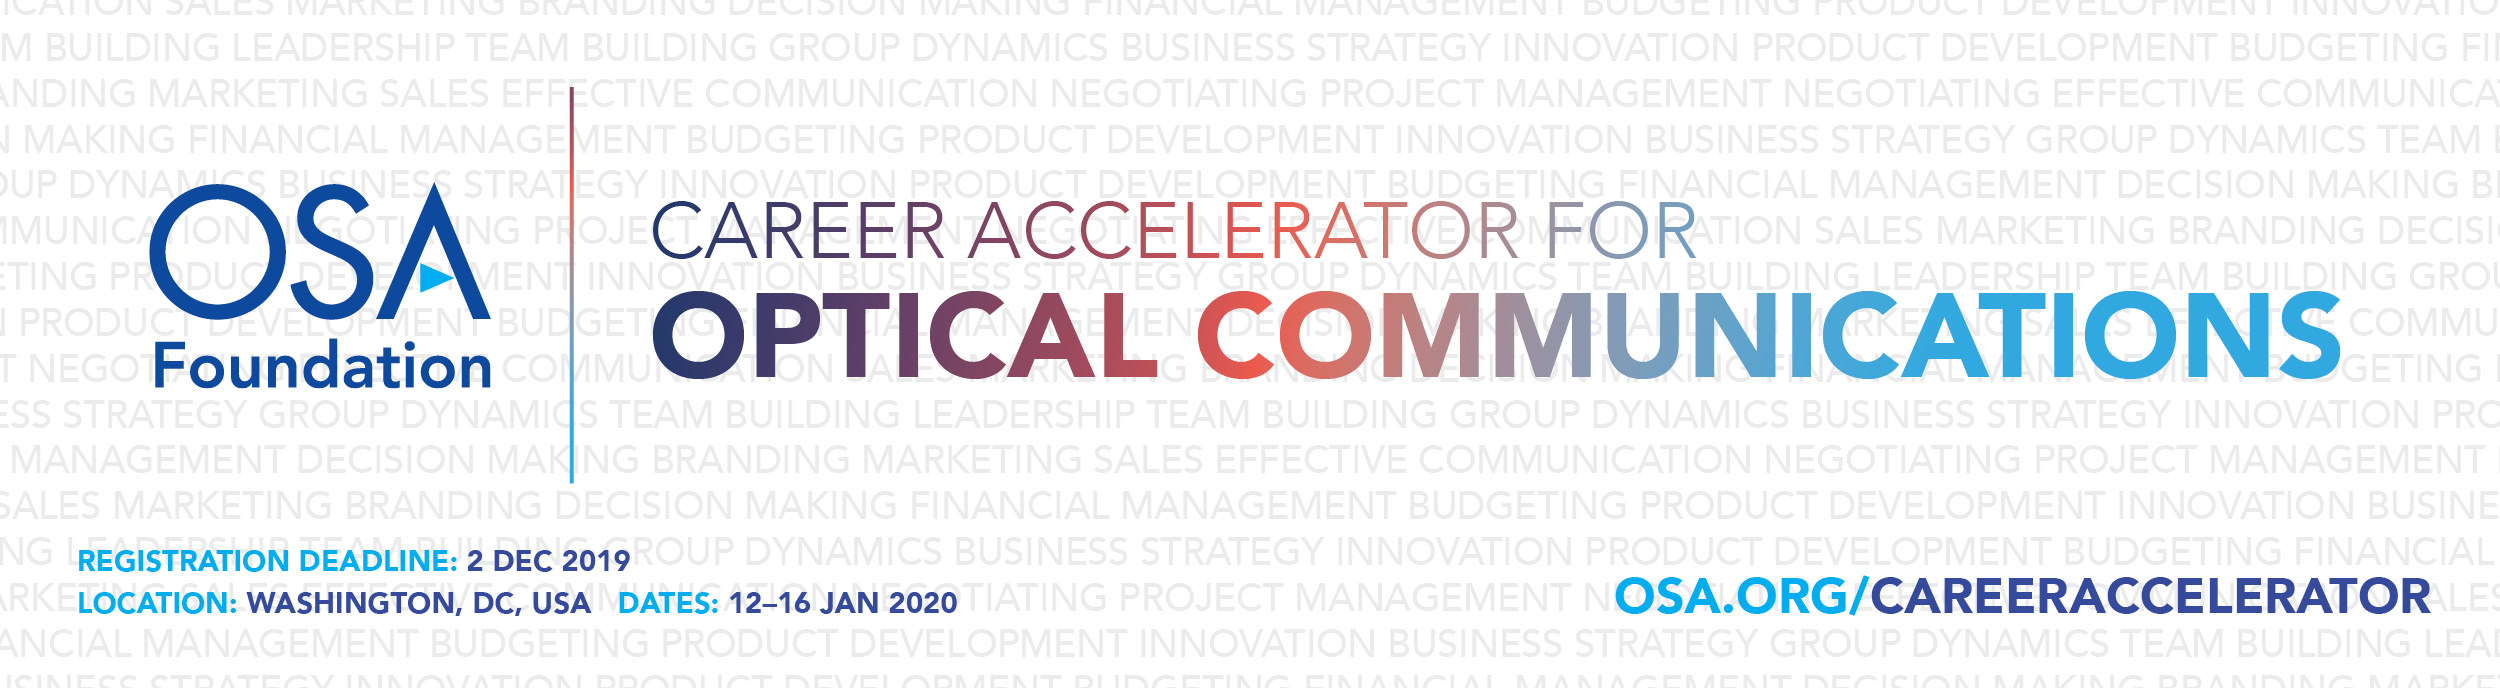 2020 Career Accelerator for Optical Communications